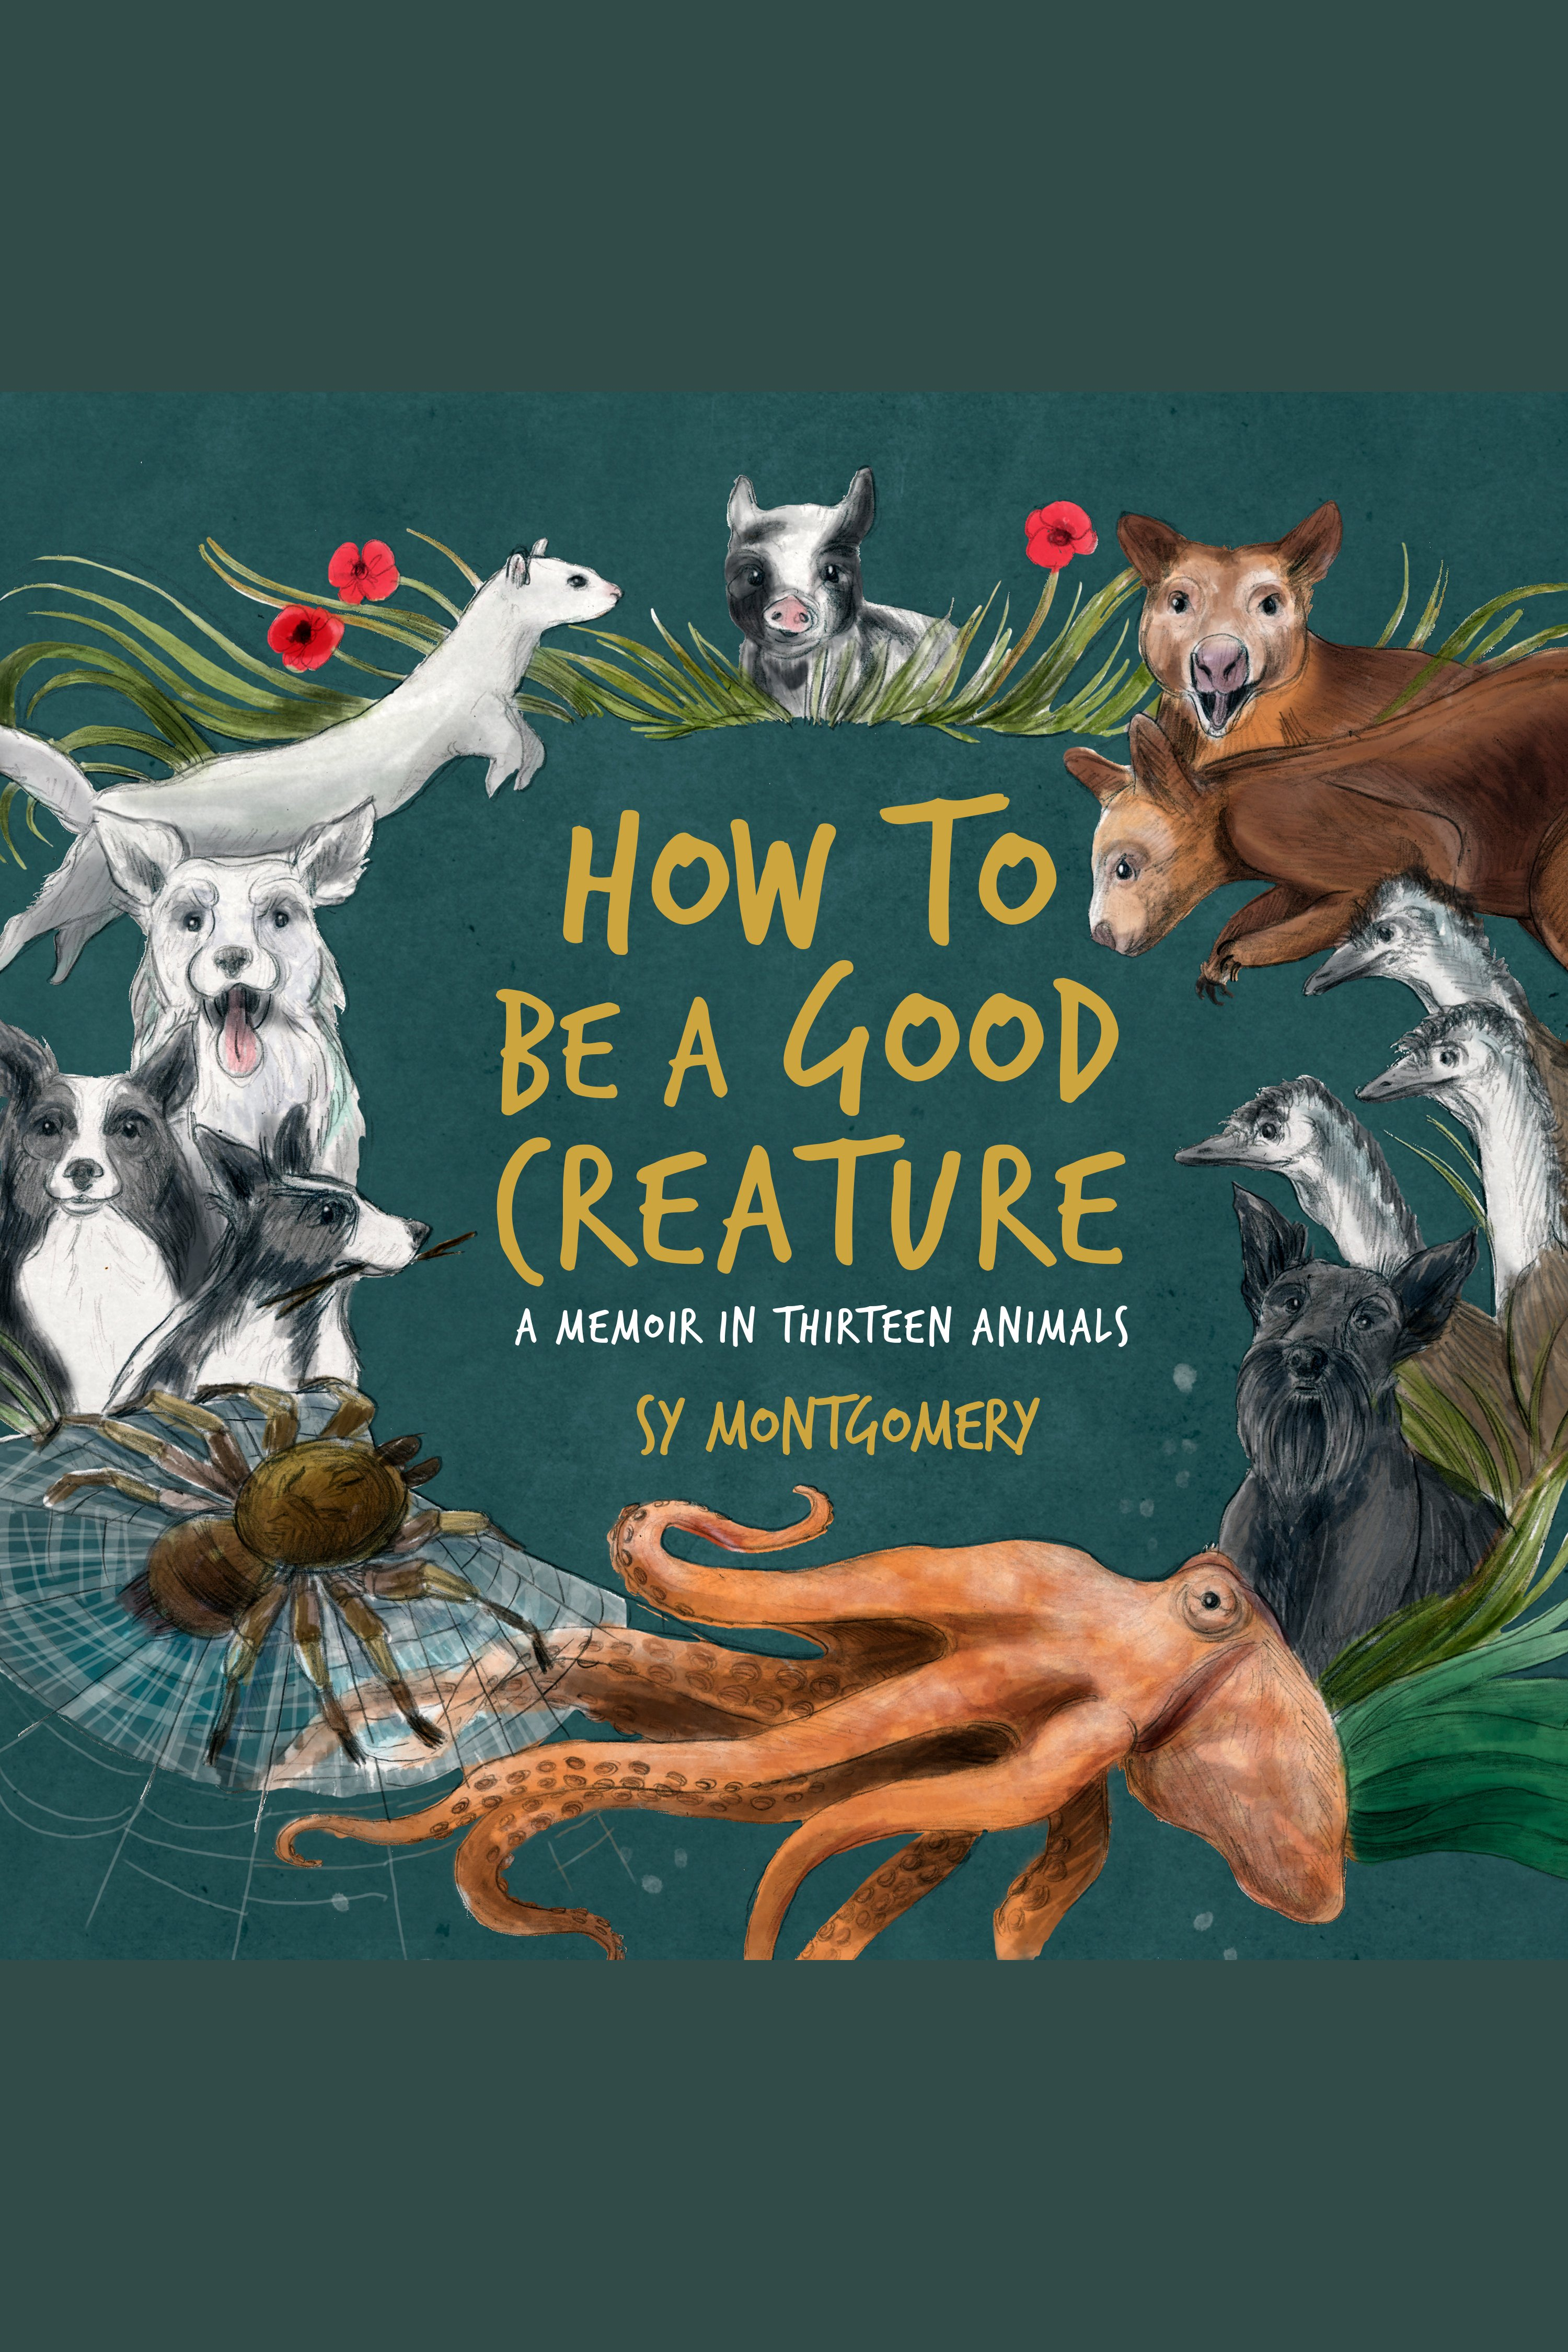 How to be a good creature [AudioEbook] : a memoir in thirteen animals